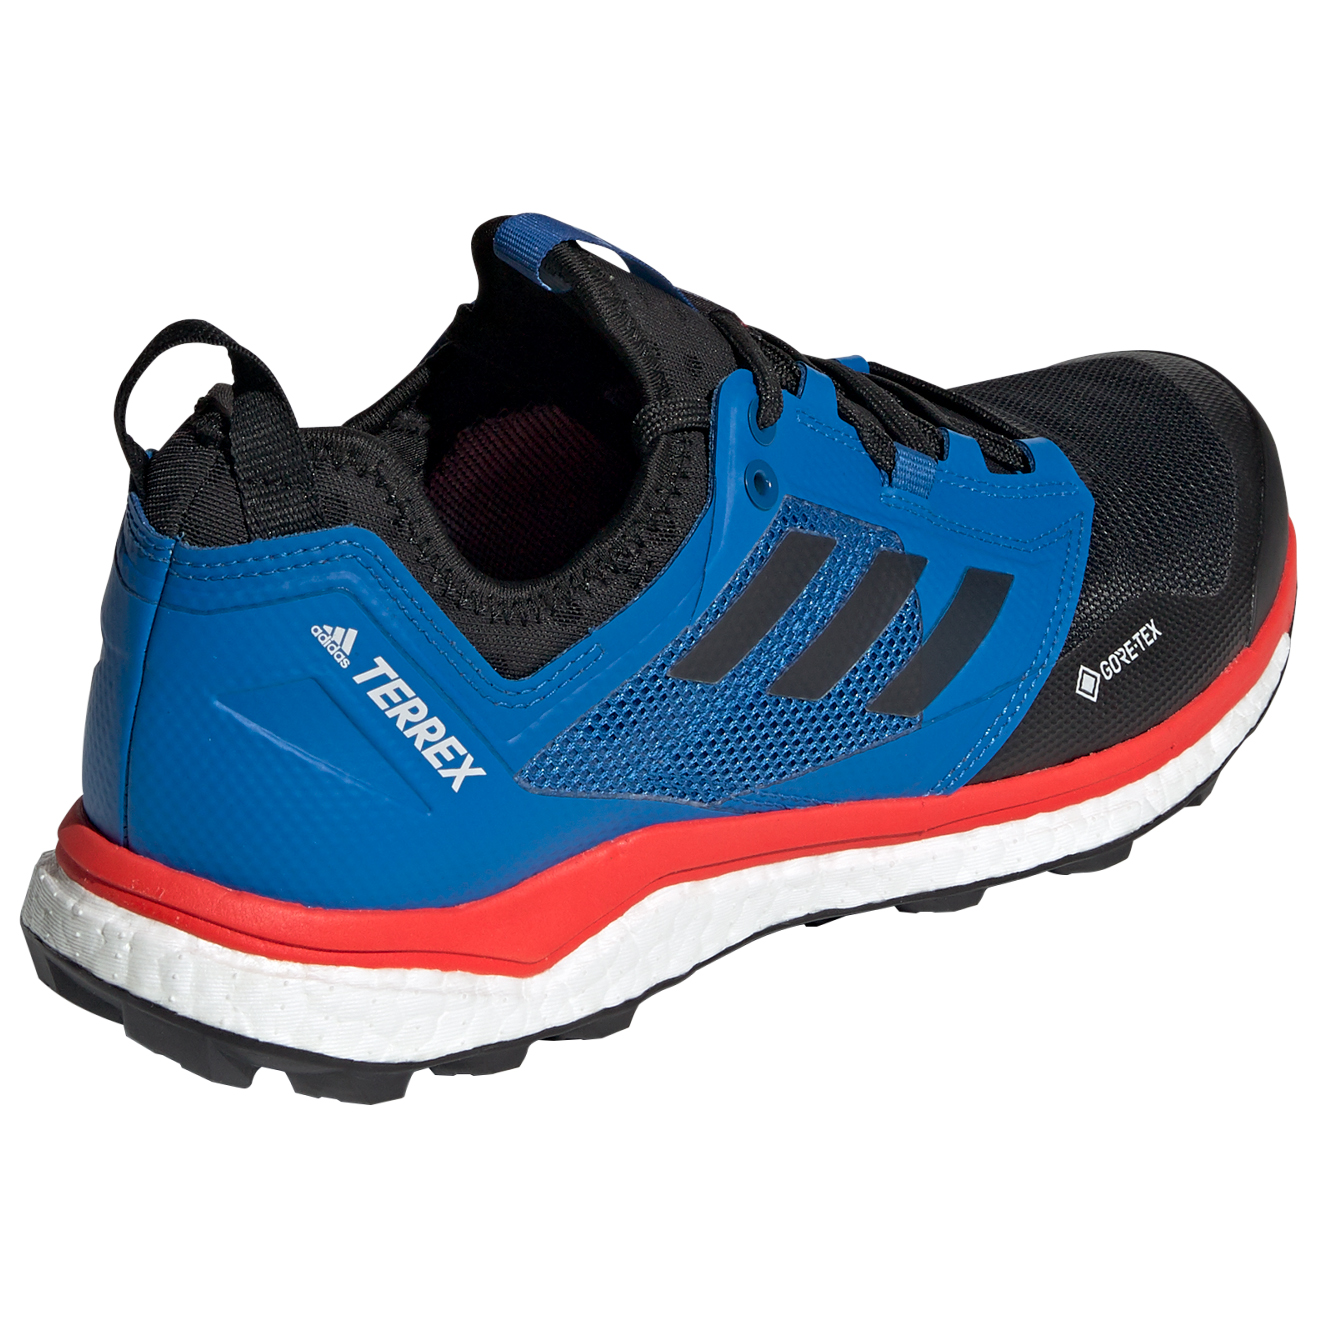 97a58e7a3b3 ... adidas - Terrex Agravic XT GTX - Trail running shoes ...